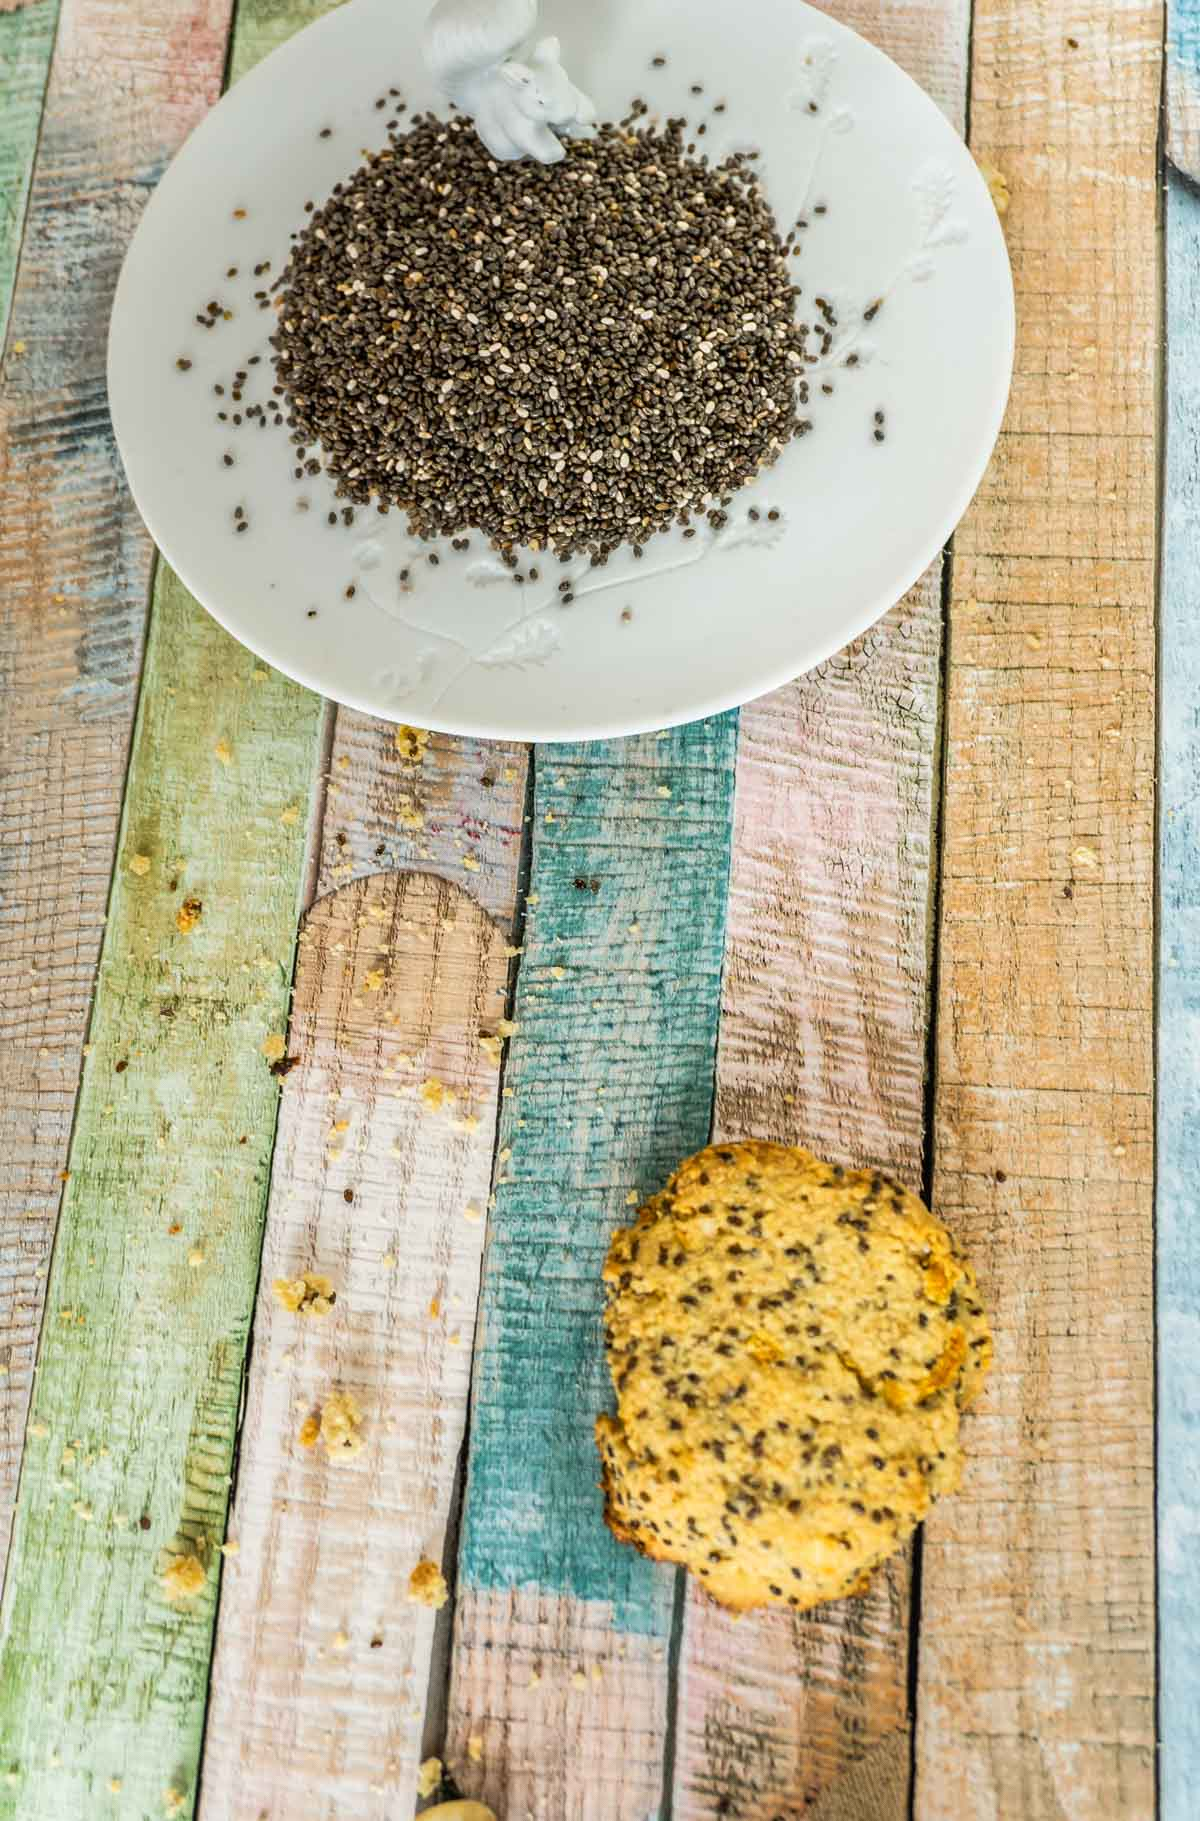 Lemon Chia Cookies with chia seeds on a plate